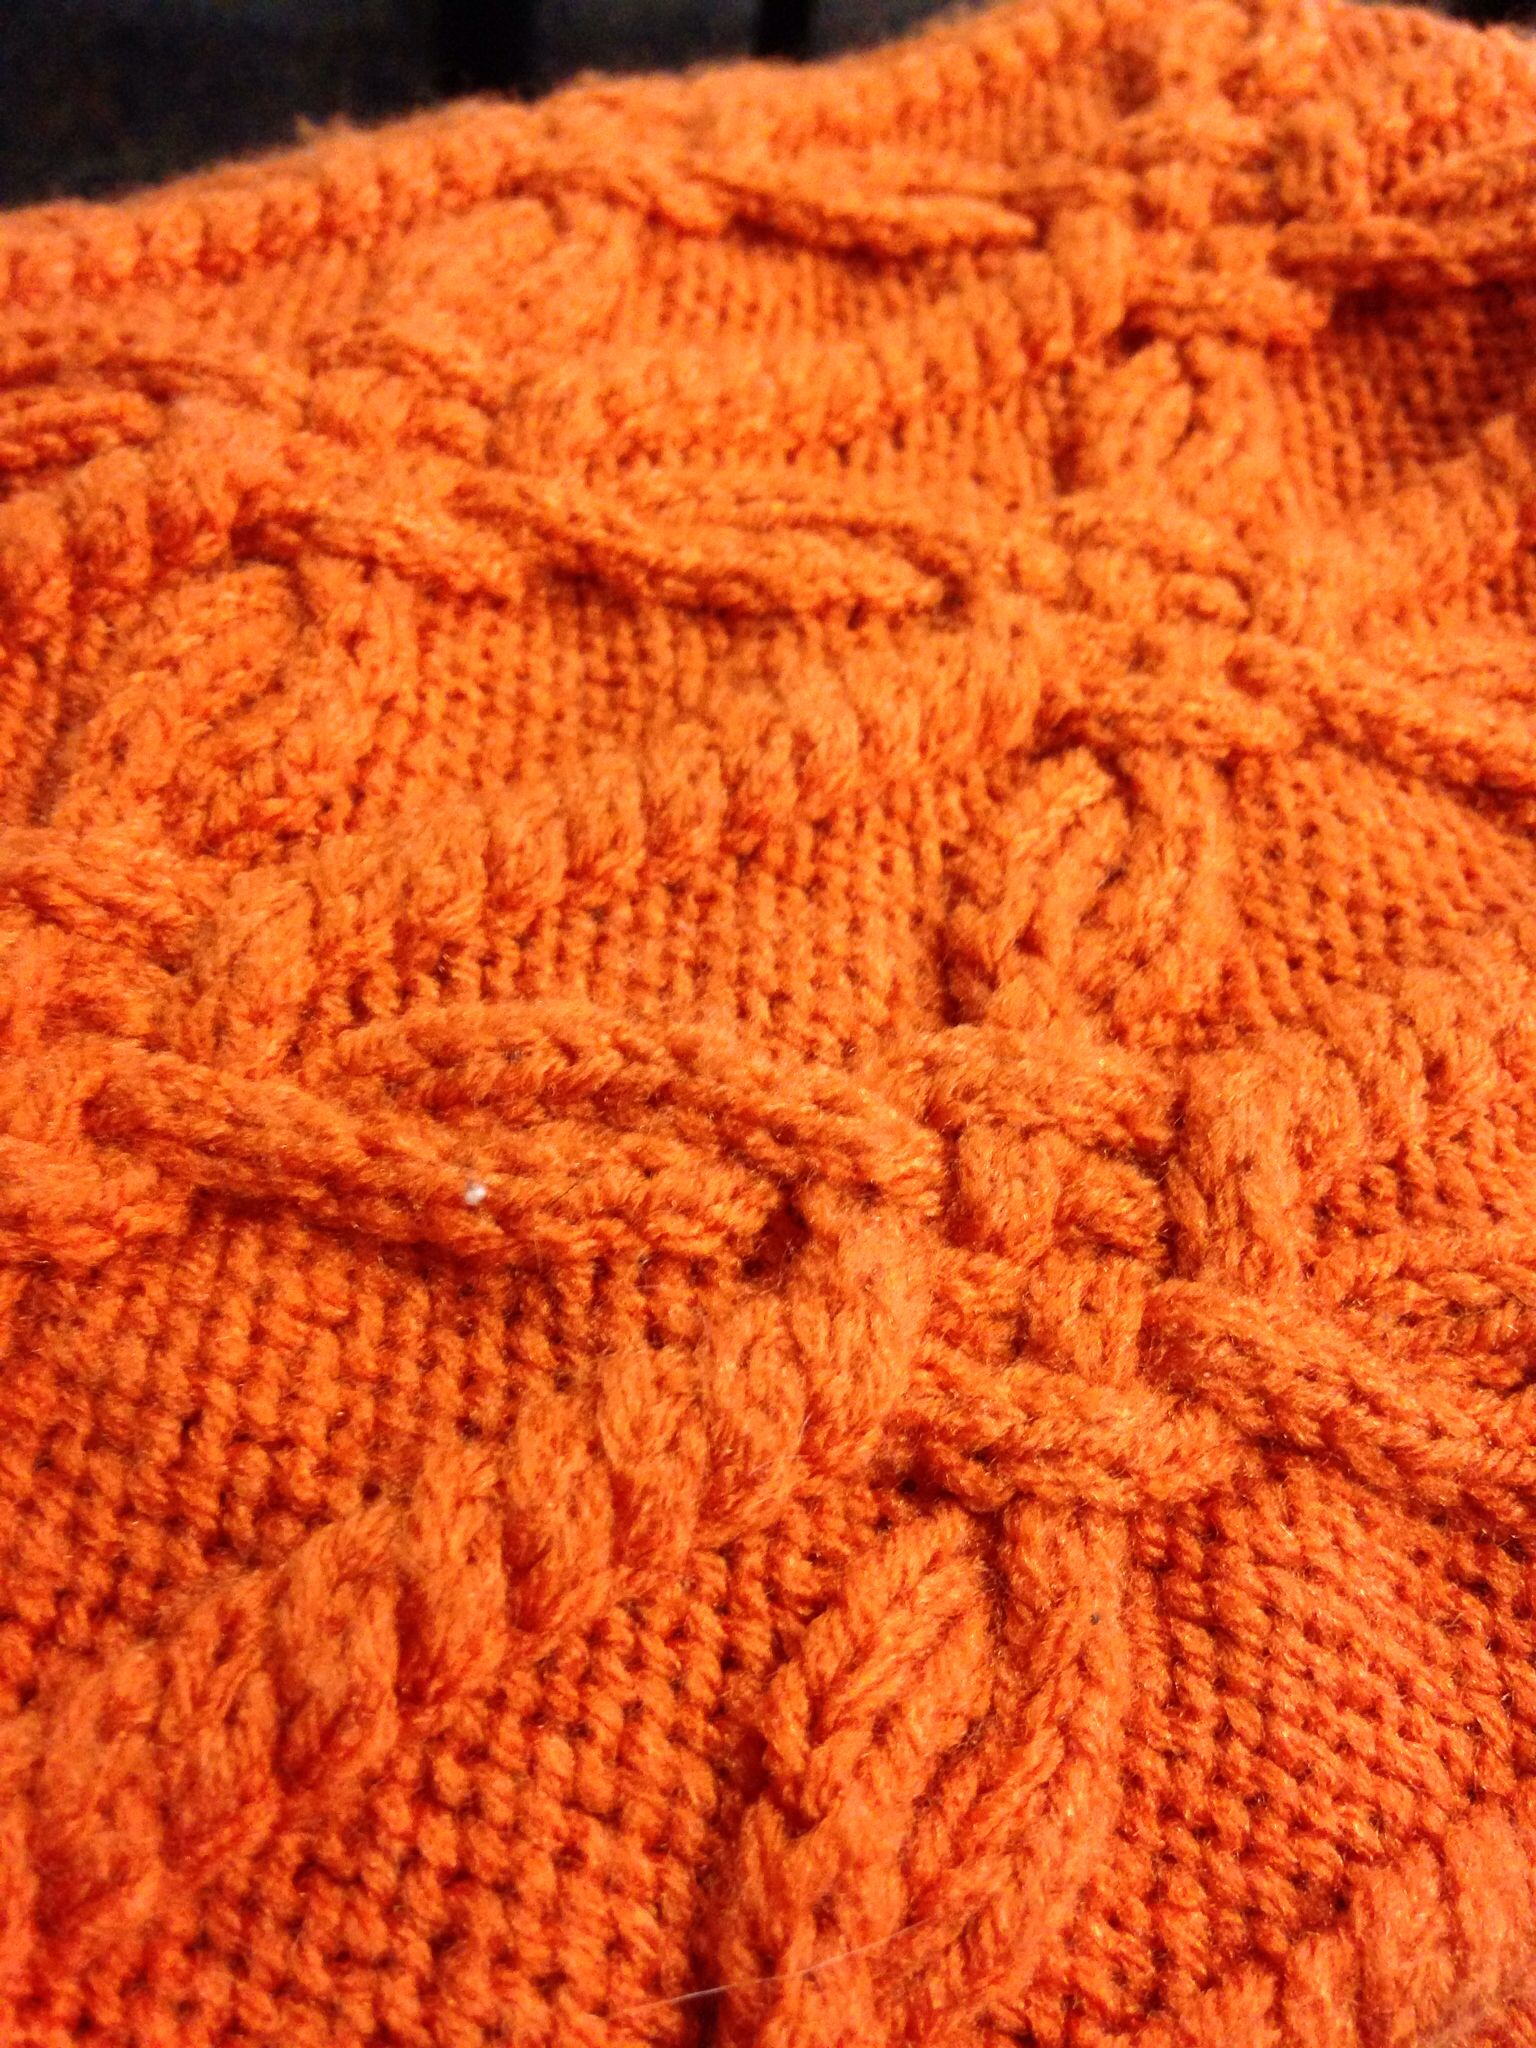 Knit cable stitch pinterest crafts